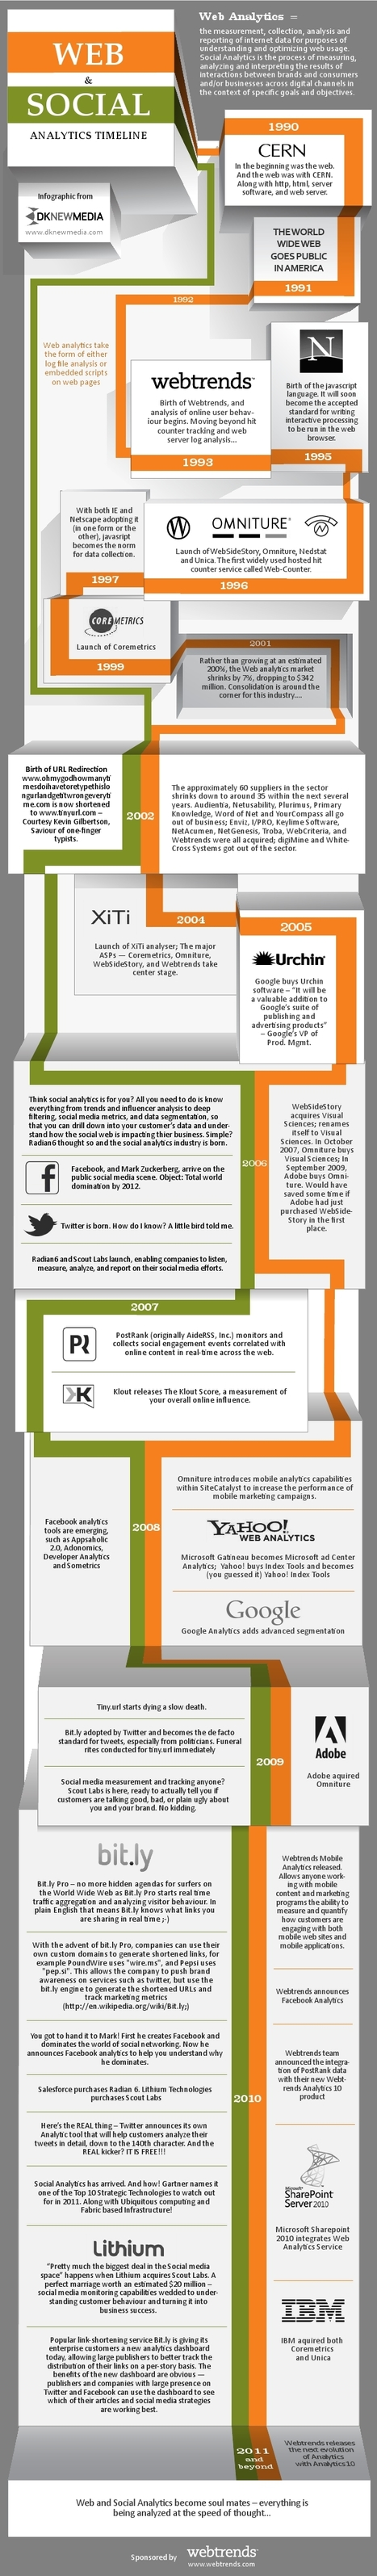 Infographic: The History of Web and Social Analytics - The Measurement Standard: Blog Edition | Measuring the Networked Nonprofit | Scoop.it